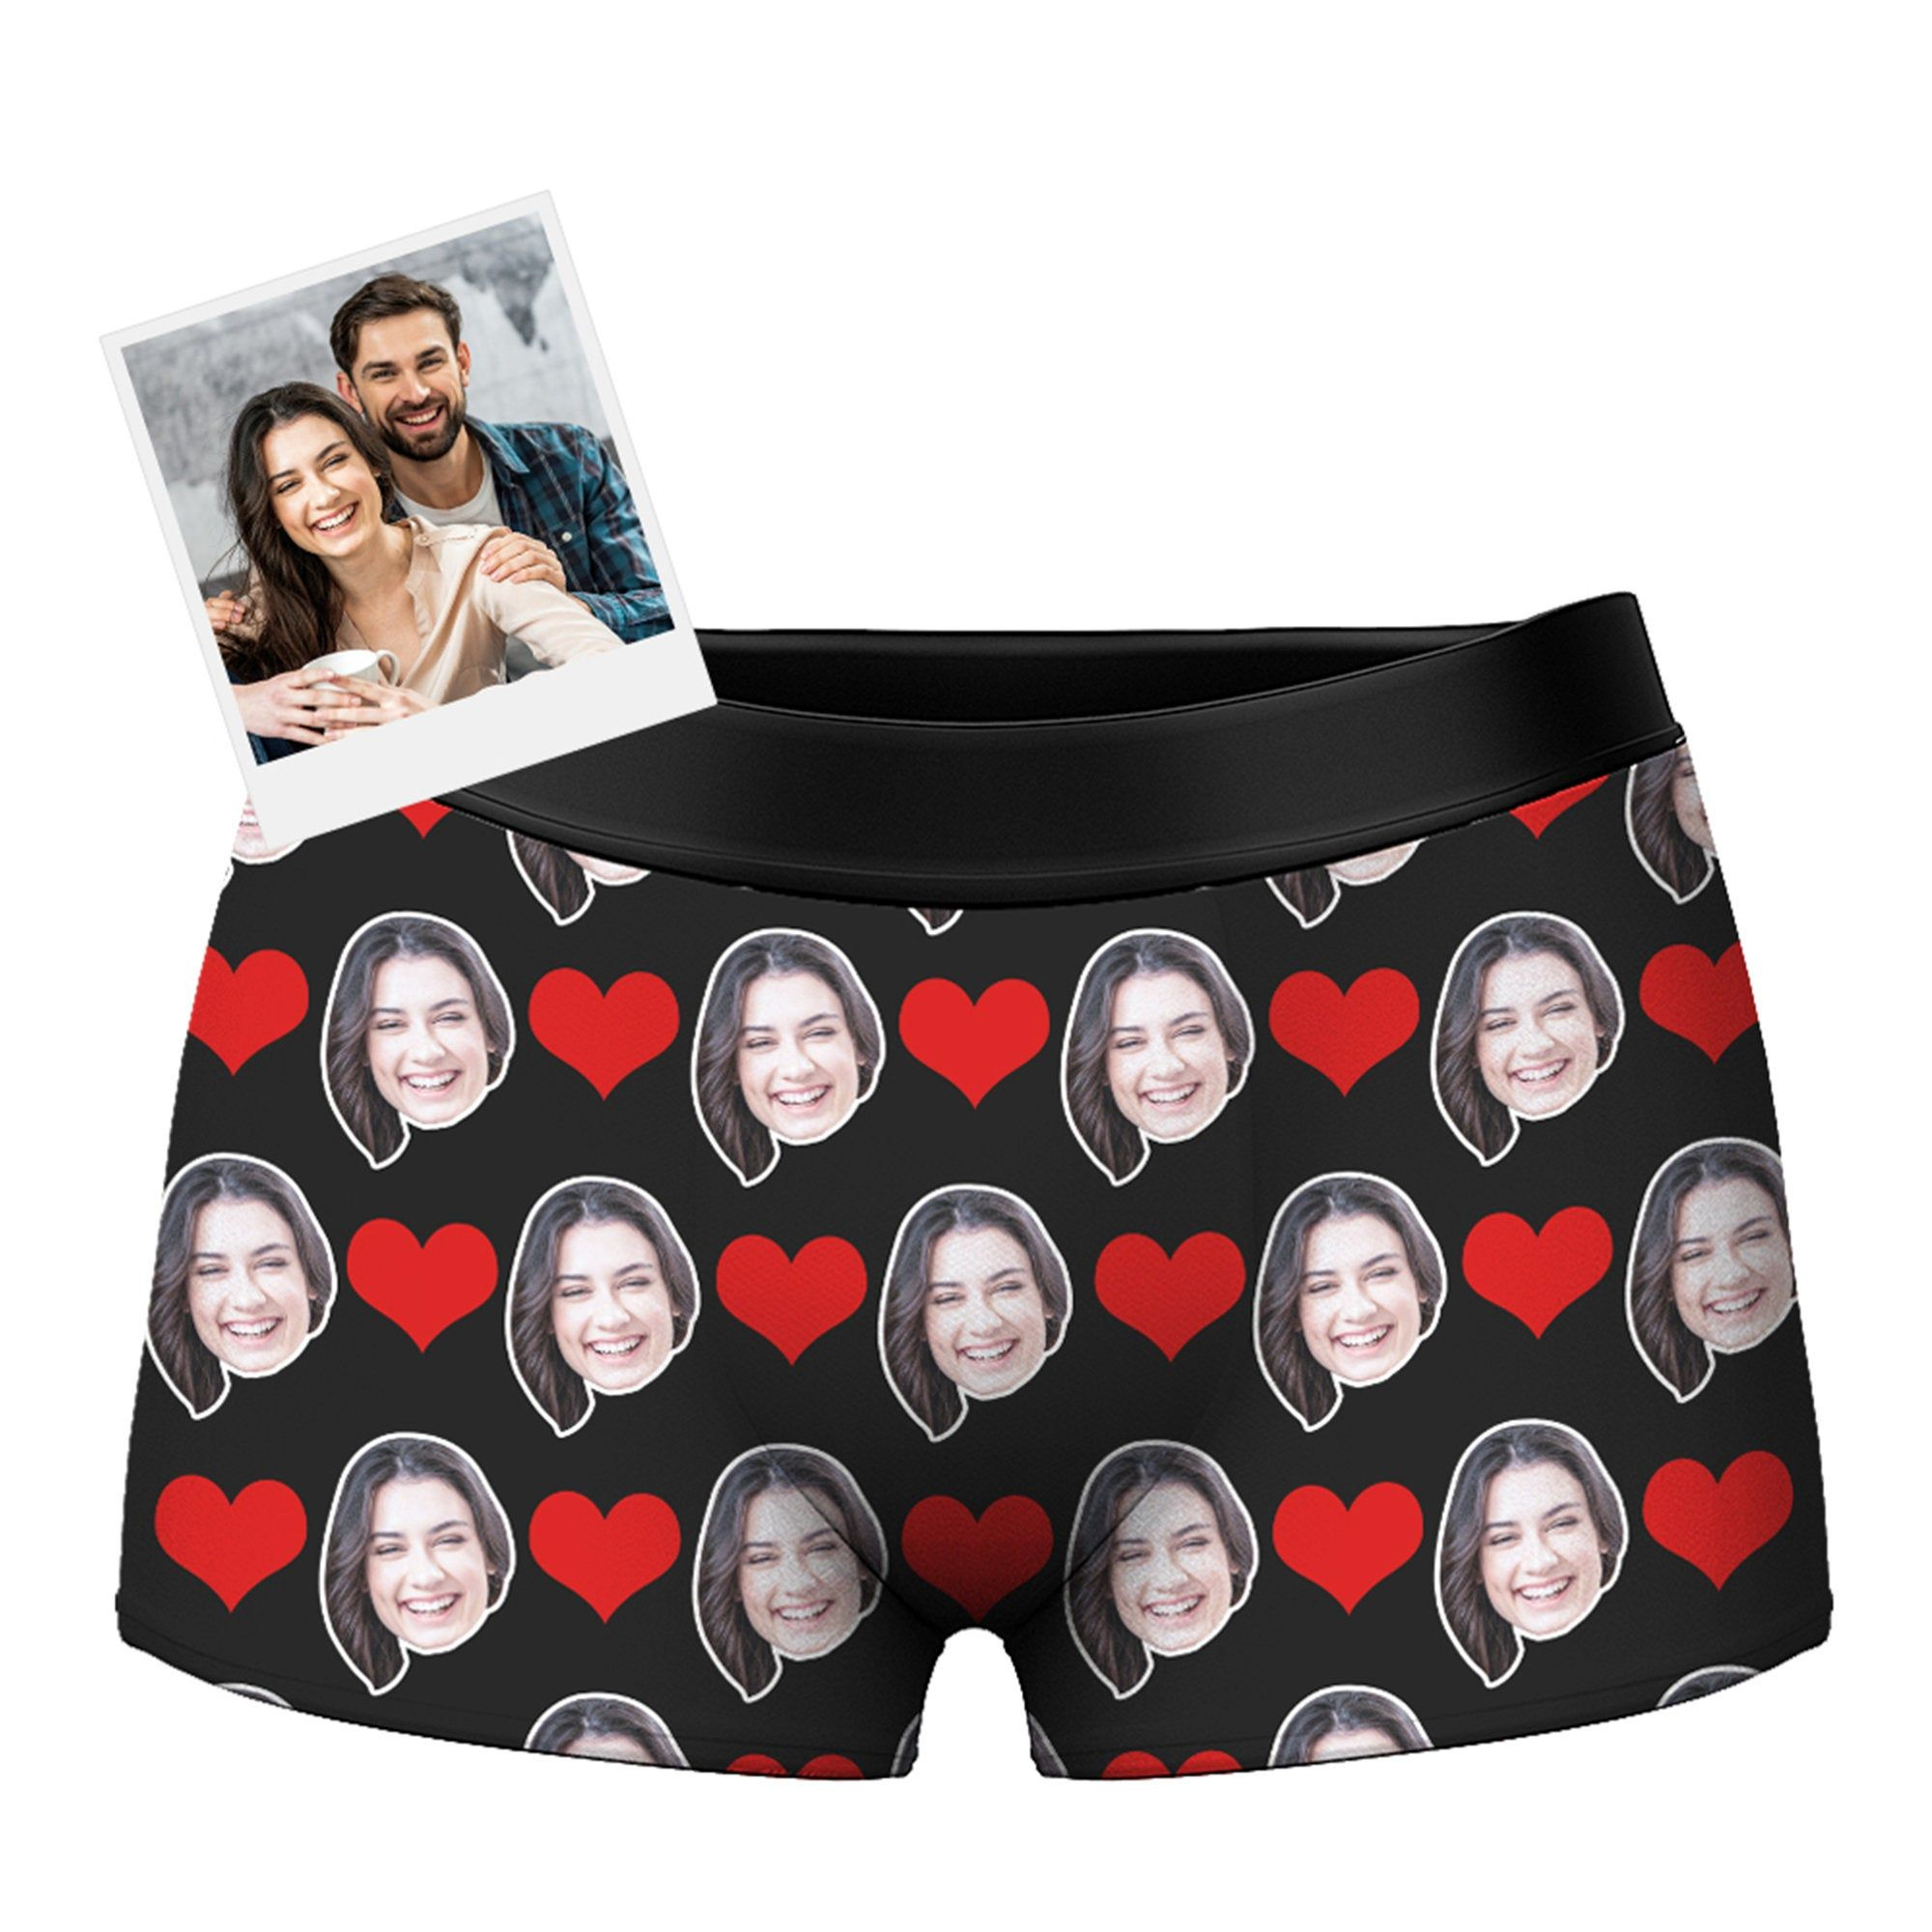 Personalized Briefs for Husband Boyfriend Custom Face Boxers Photo Underwear Birthday Gifts Wife Face on Boxer Valentine/'s Day Gifts